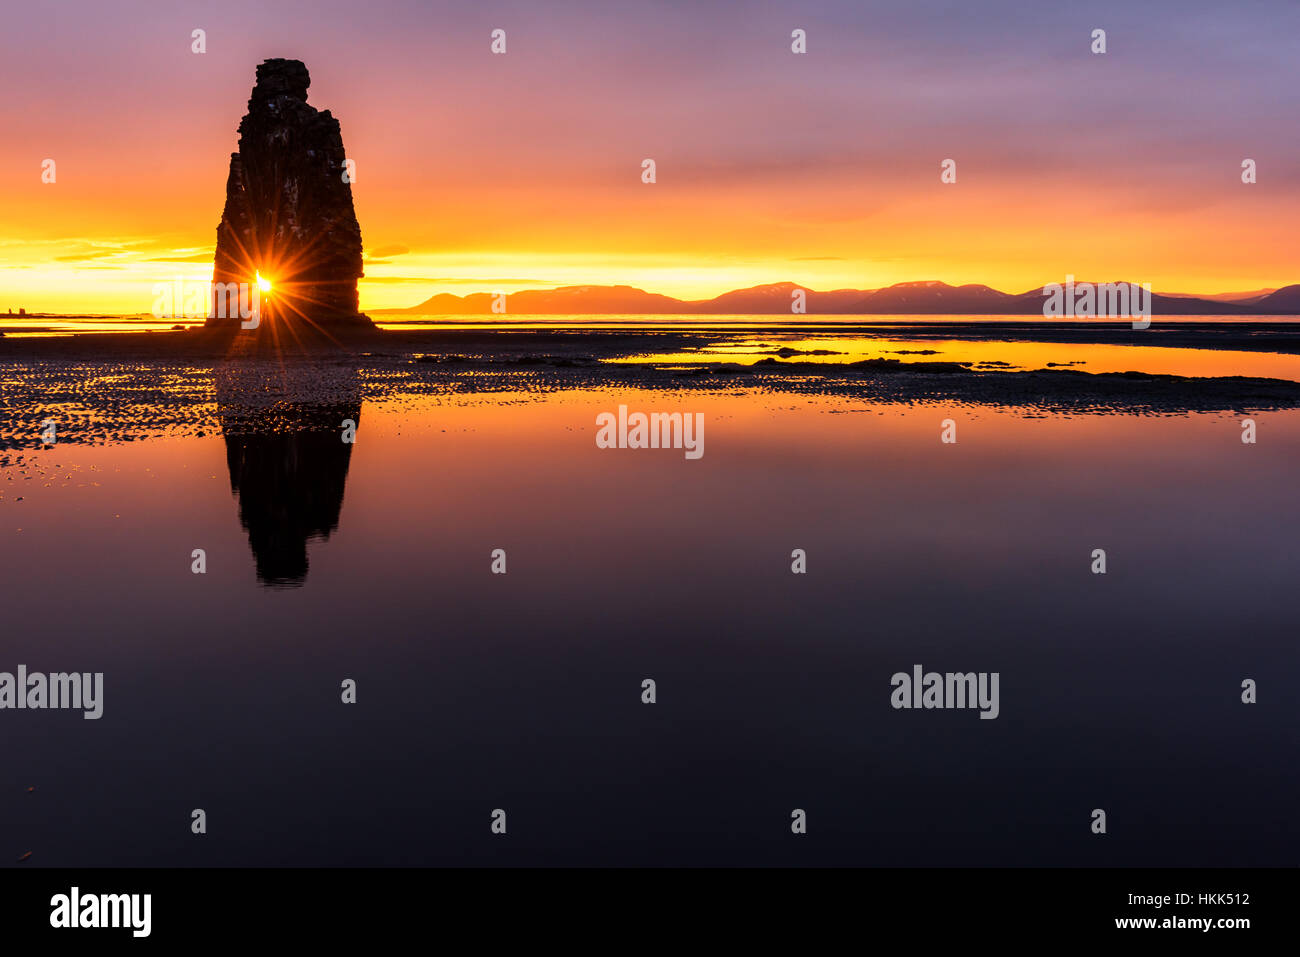 Basalt stack Hvitserkur on the Vatnsnes peninsula, Iceland, Europe. Stock Photo